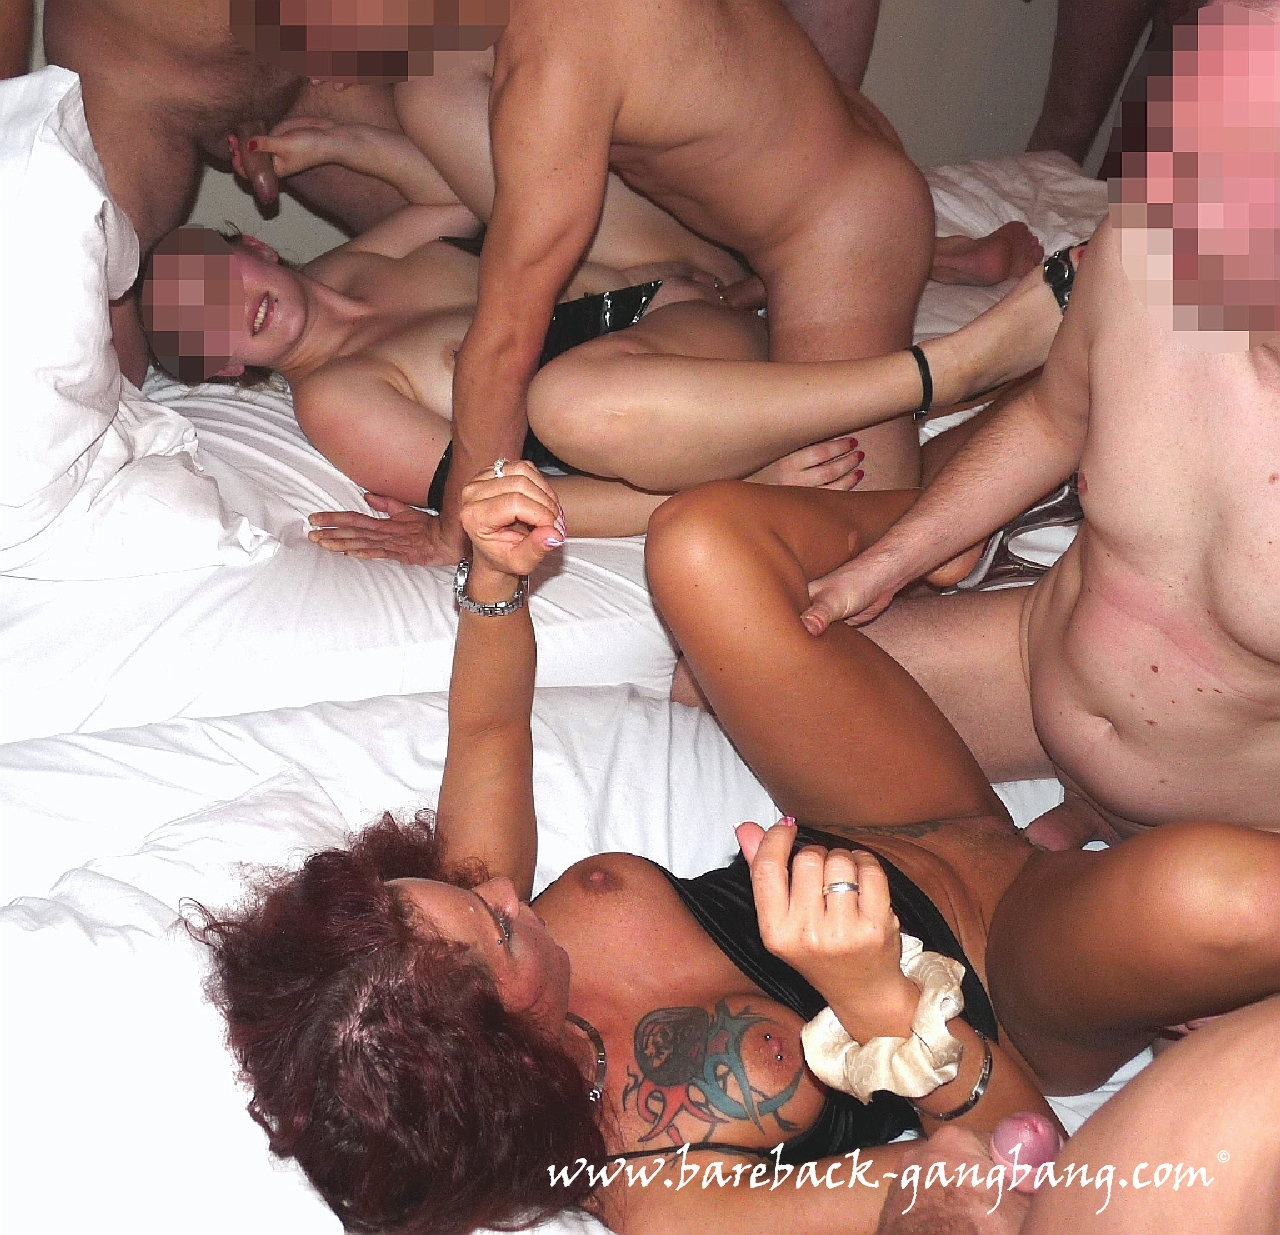 10 perv hunks gang banged and dominated horny slut 2